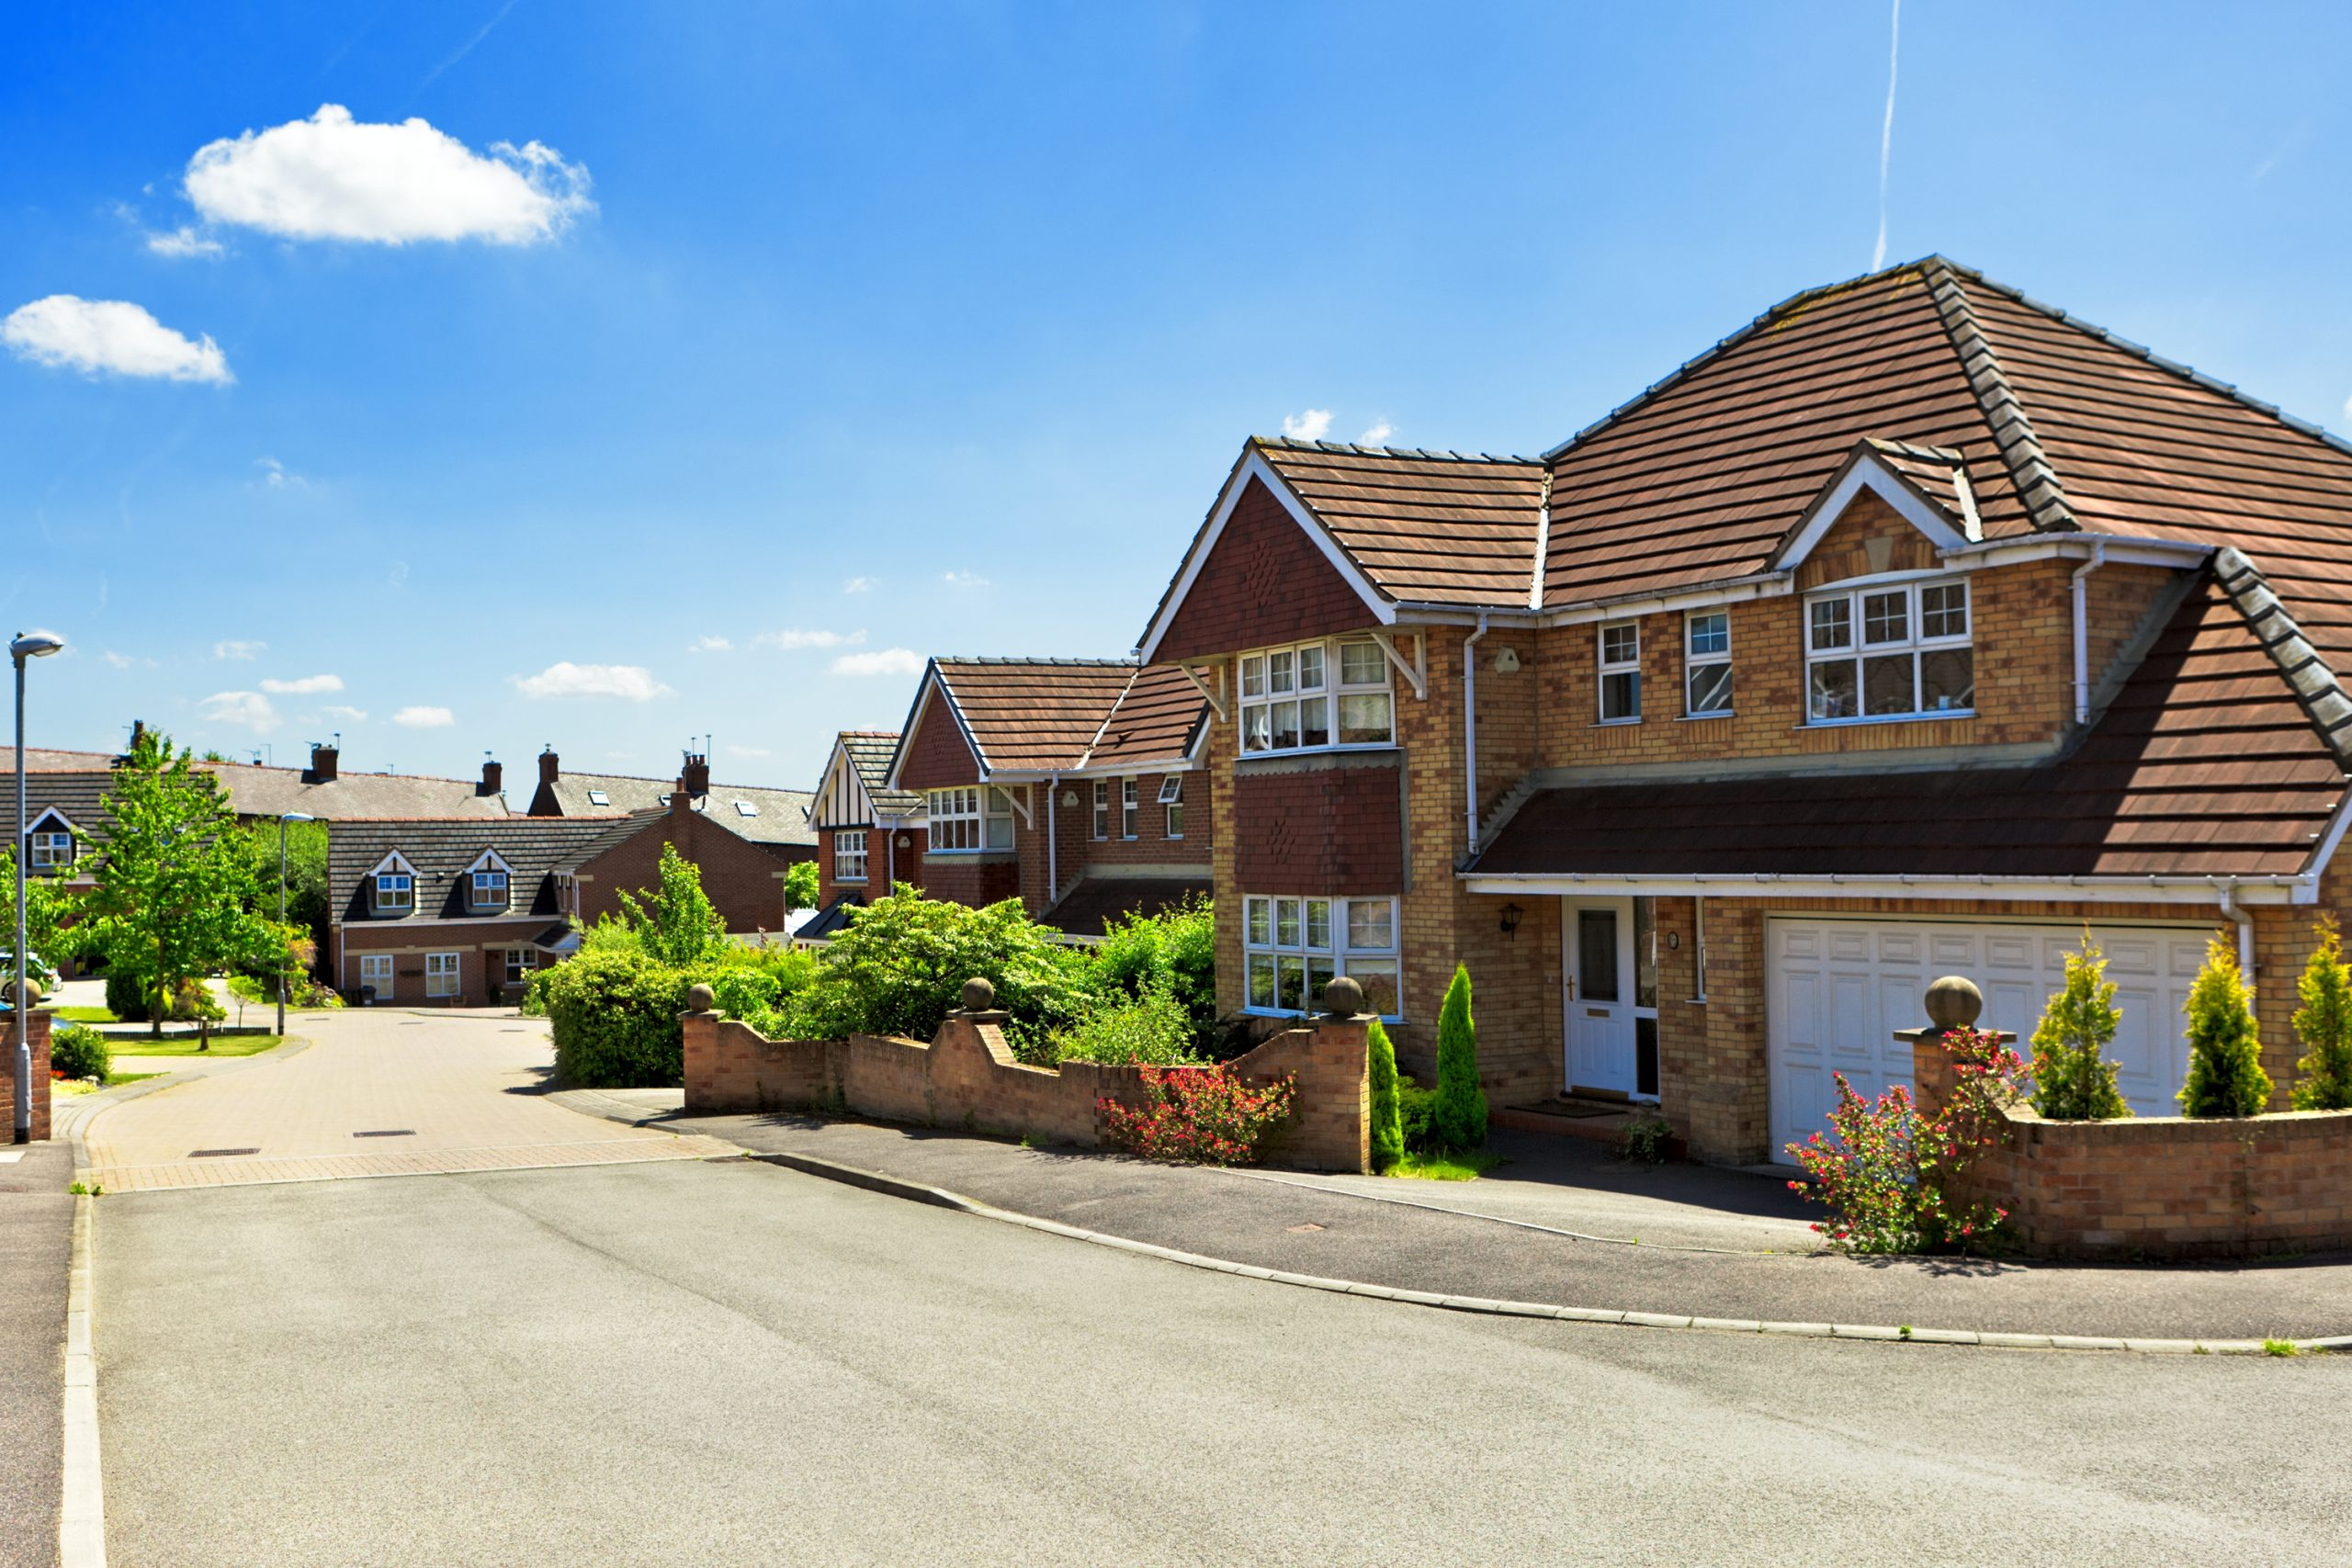 New home shared ownership